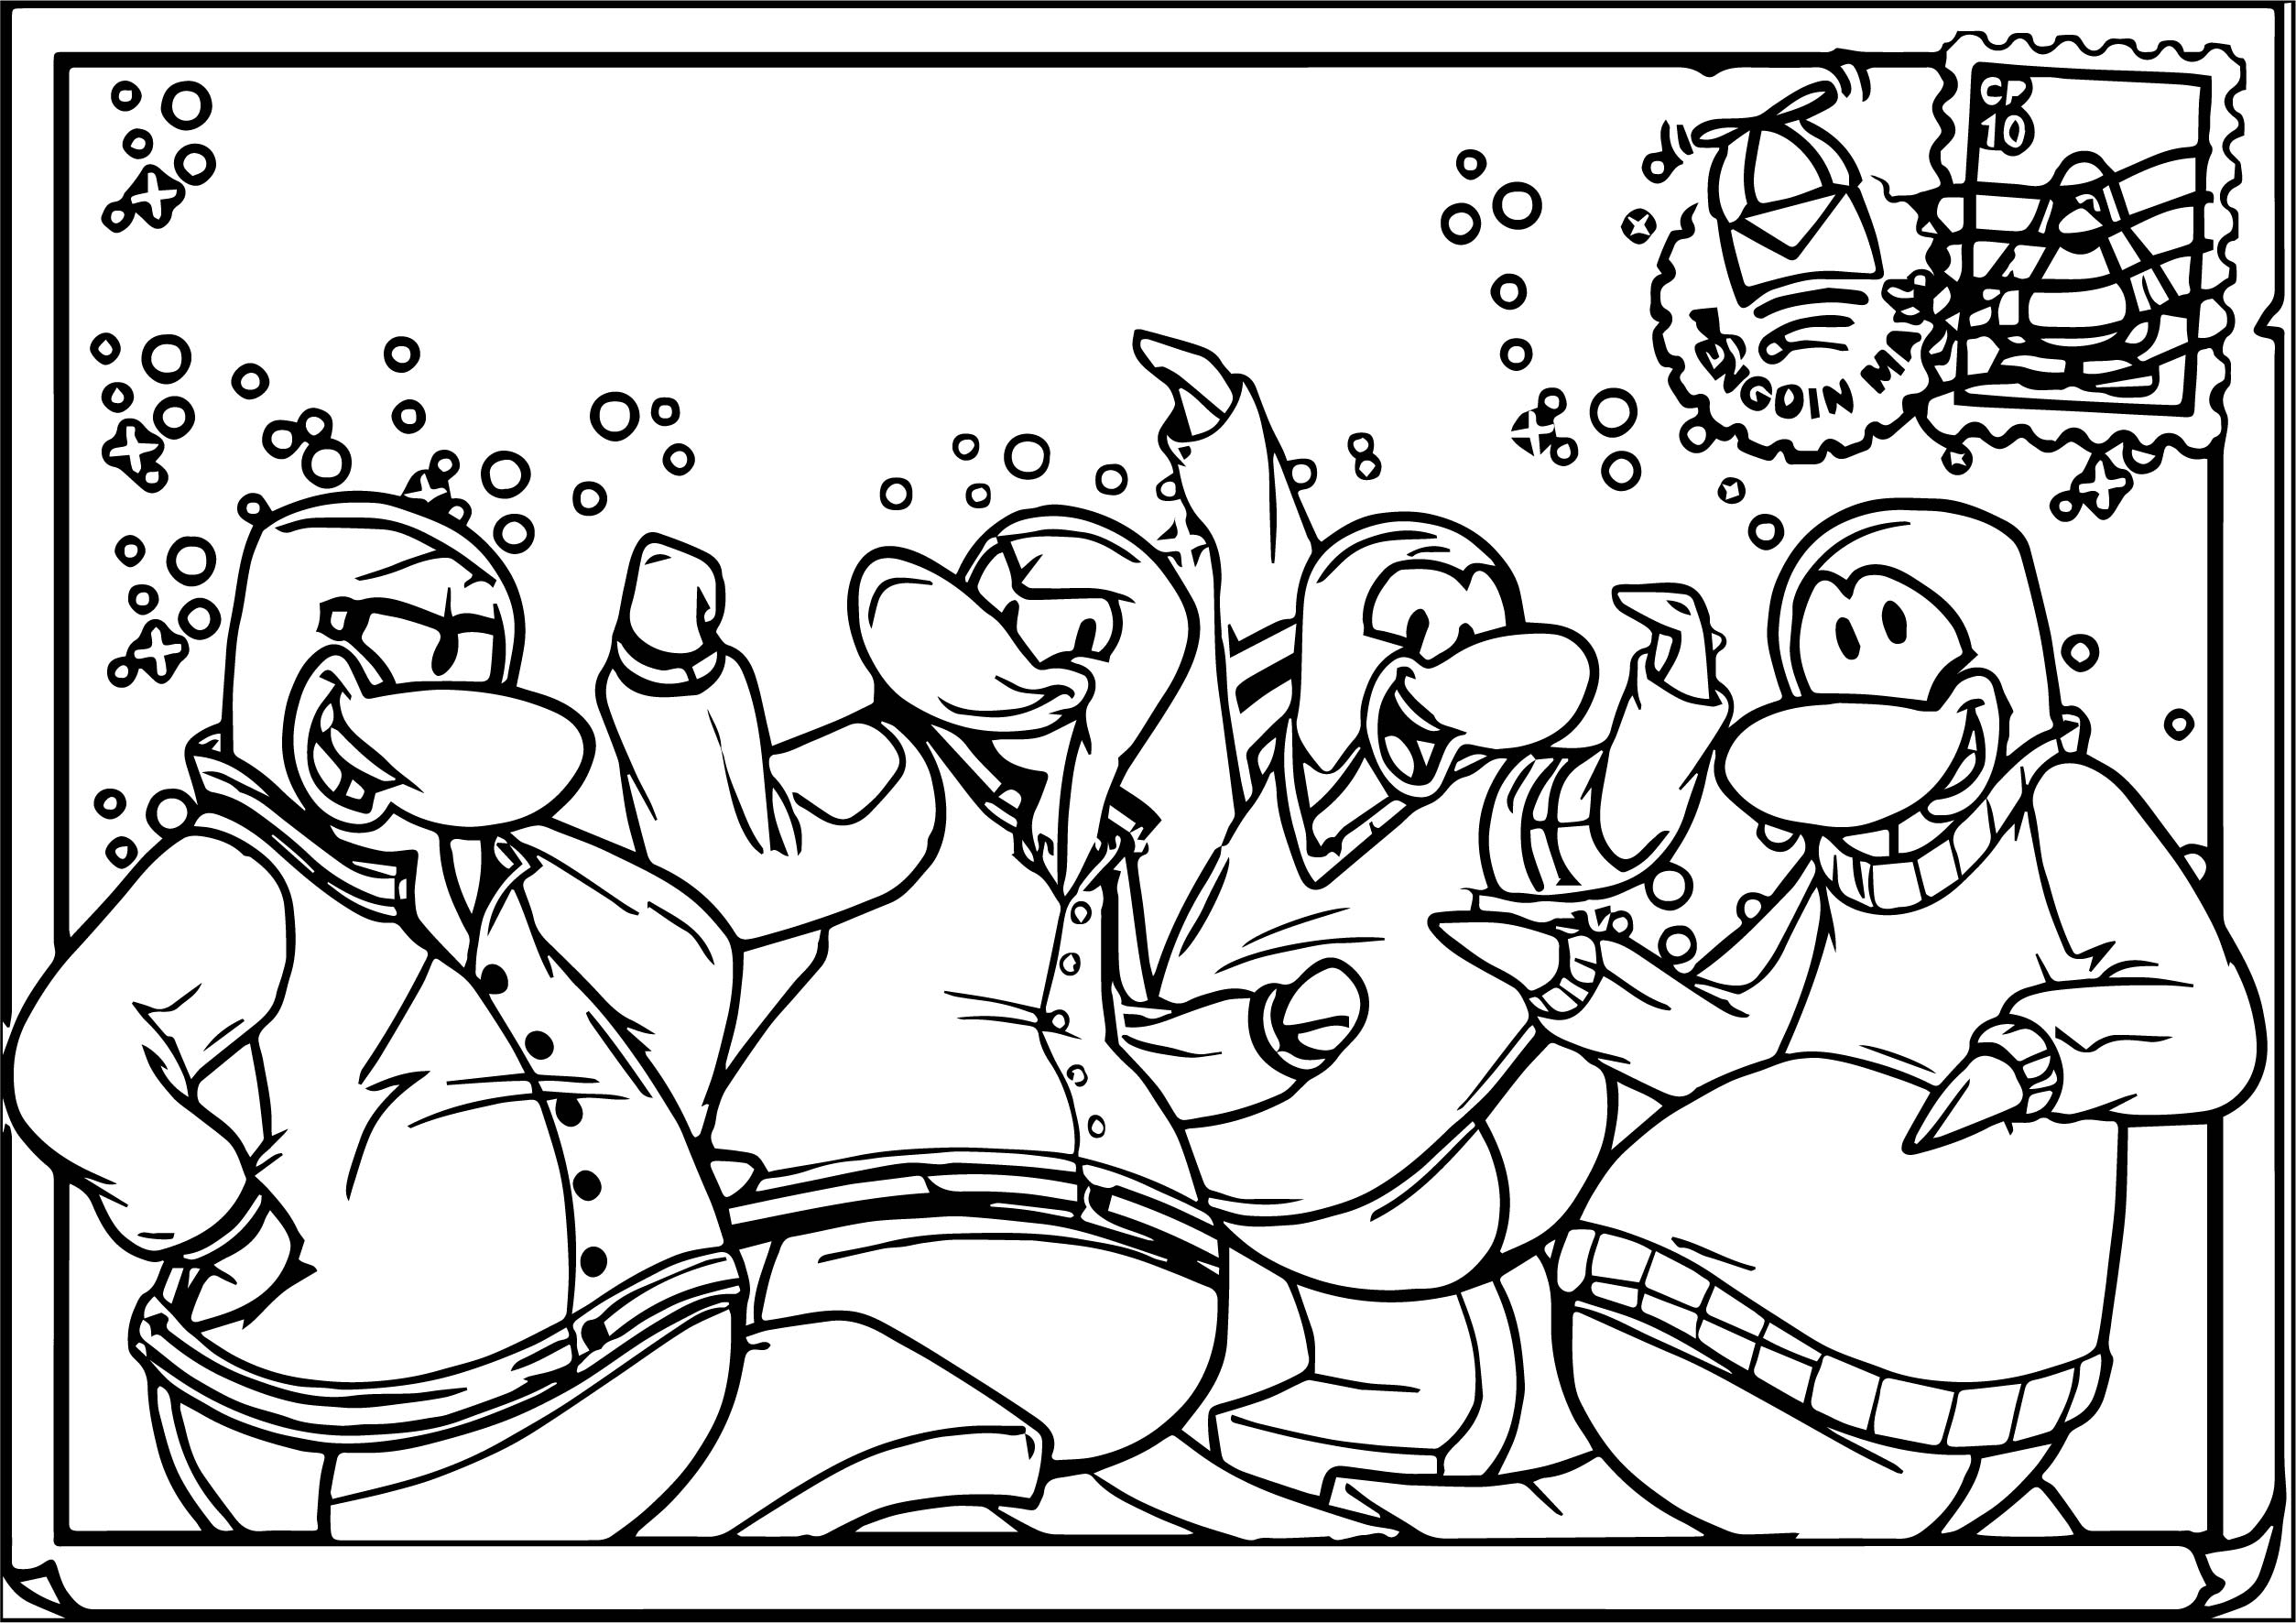 Club Penguin Coloring Page 30